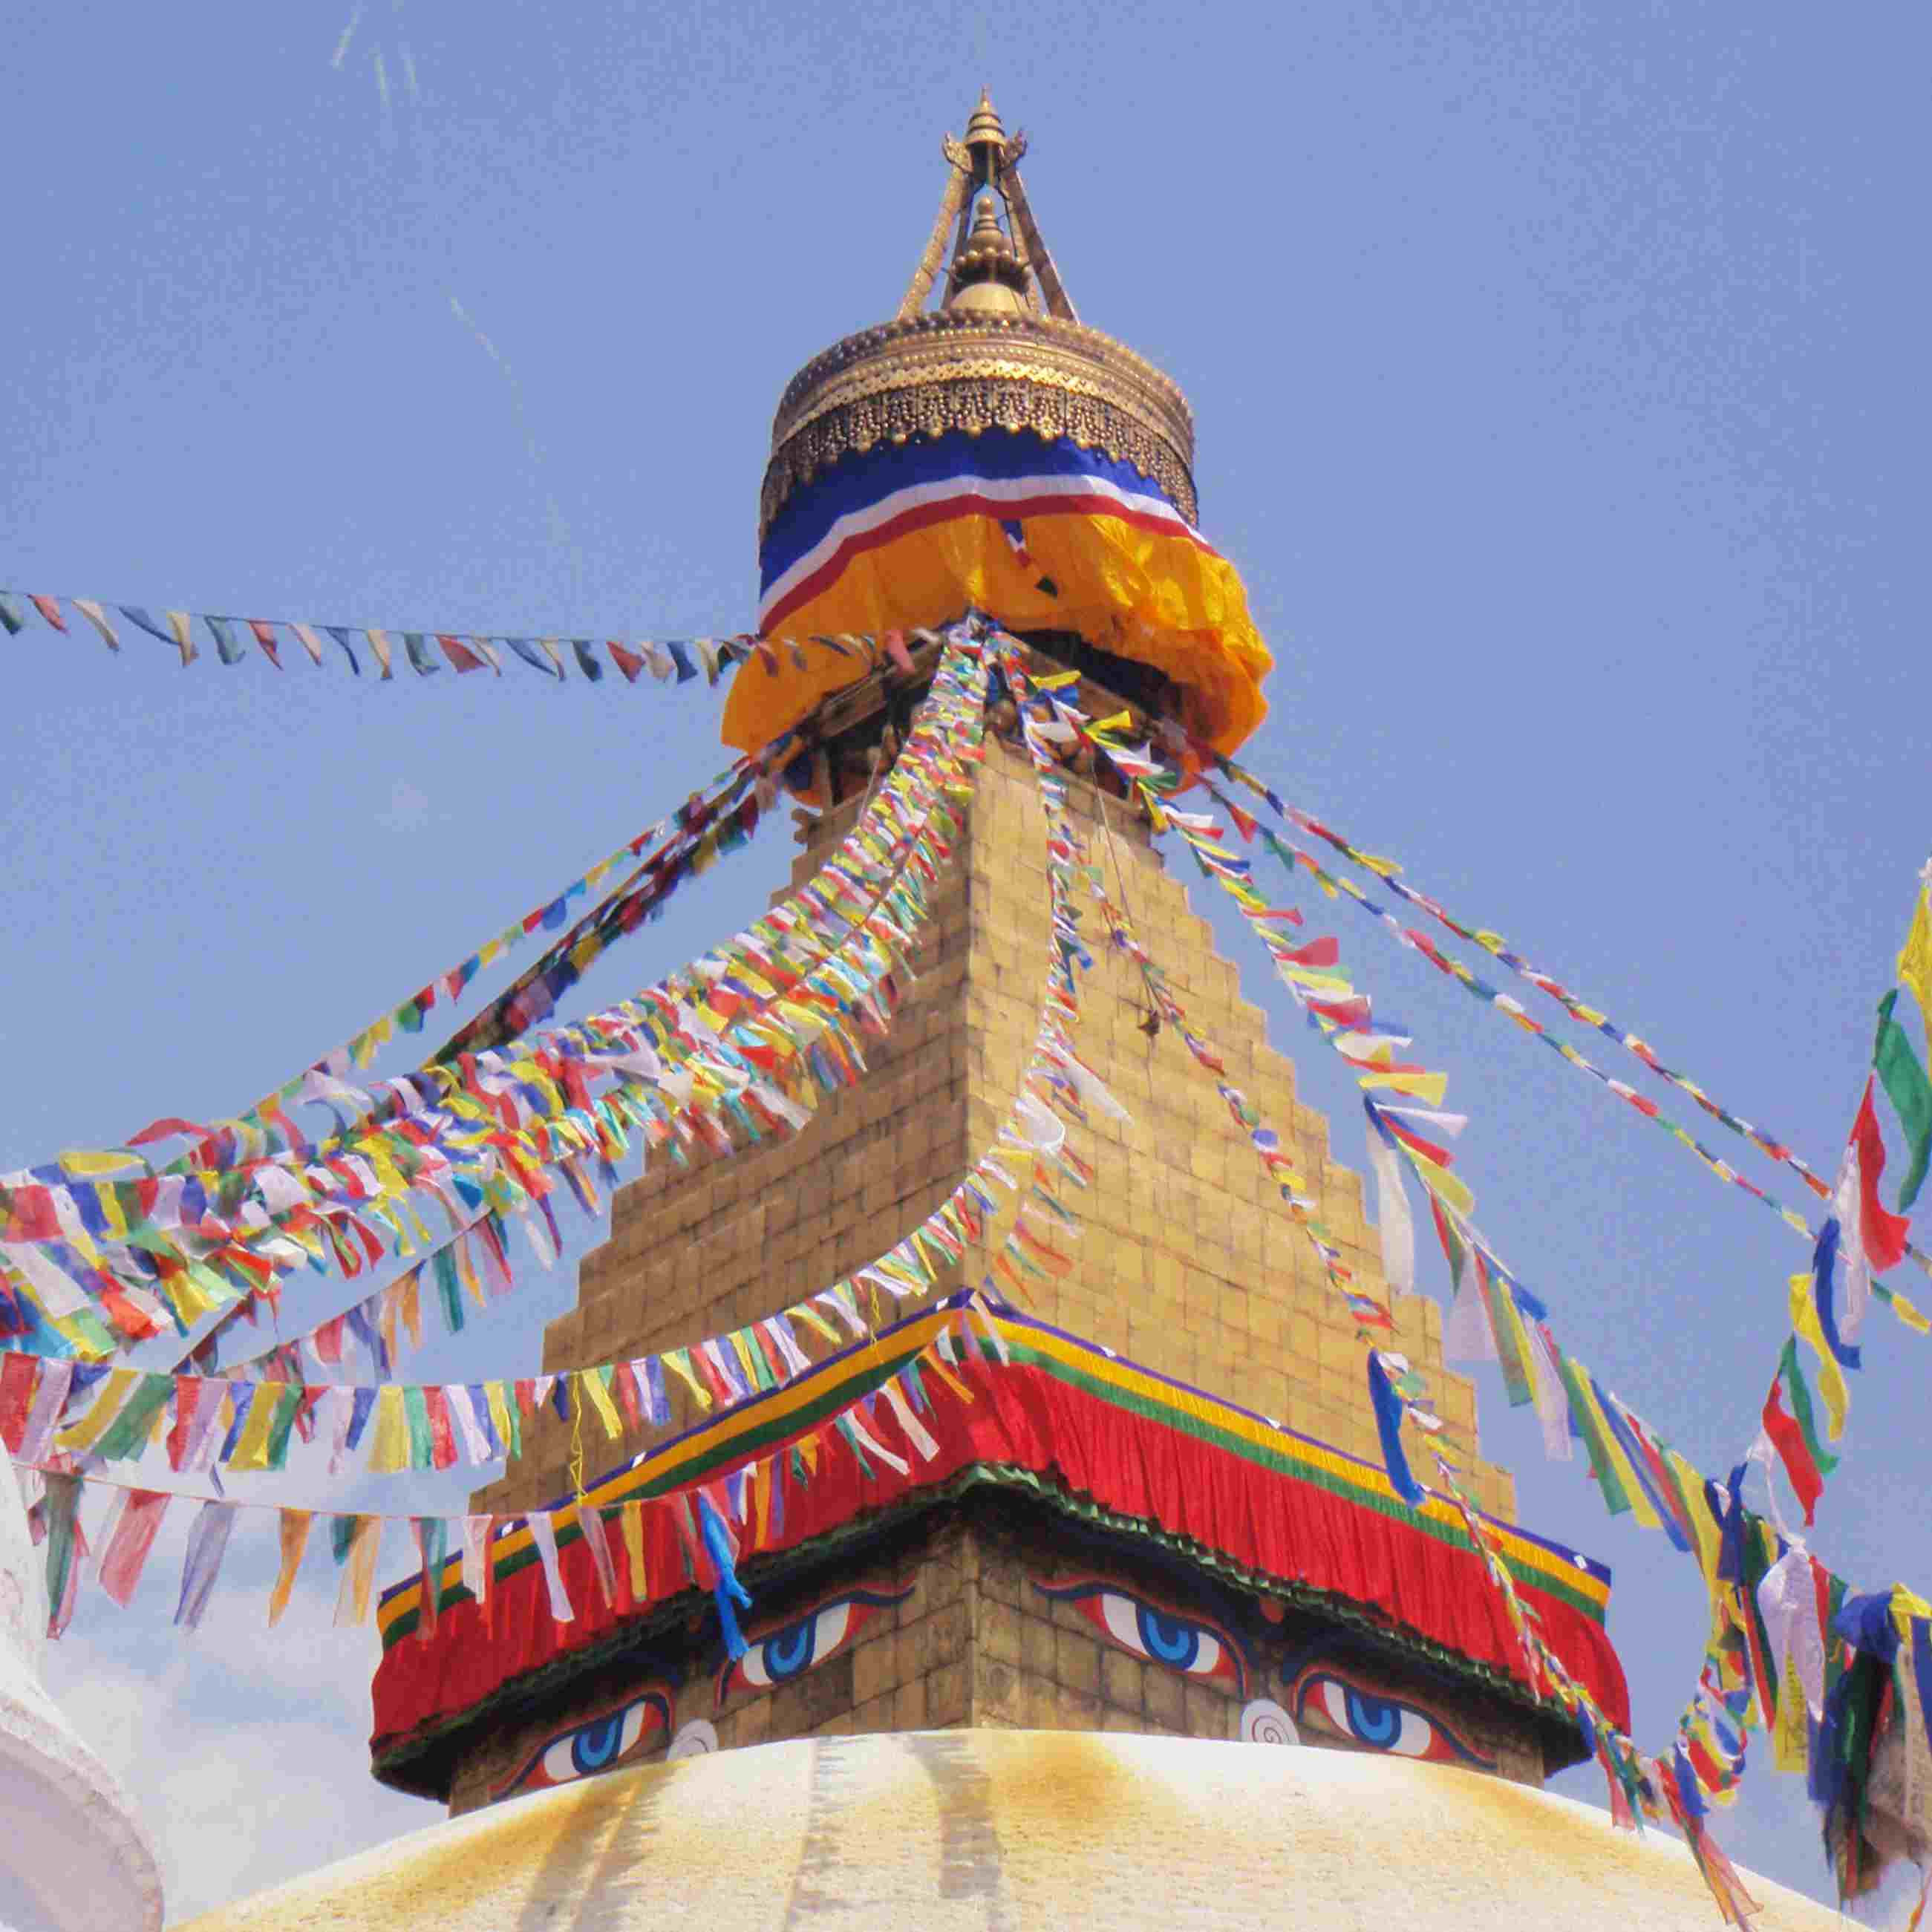 The spire on the Boudhanath Temple